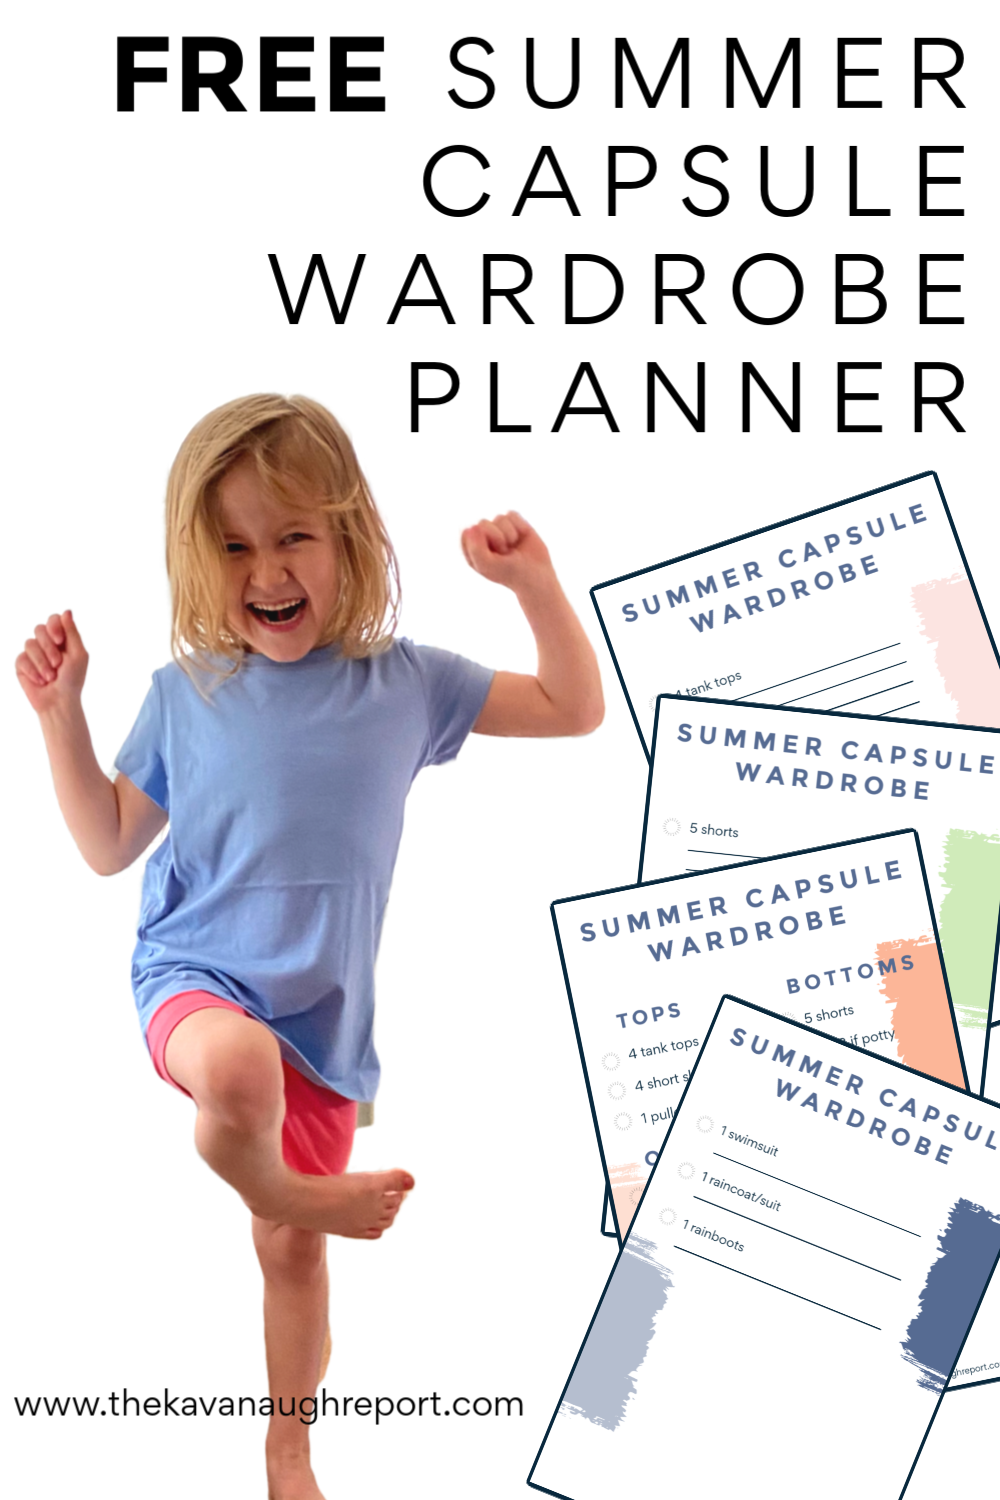 Capsule wardrobes can make dressing your children easier and more independent in a Montessori home. In this free summer capsule wardrobe planner you can organize and plan for your child's newest wardrobe without spending or buying too much.